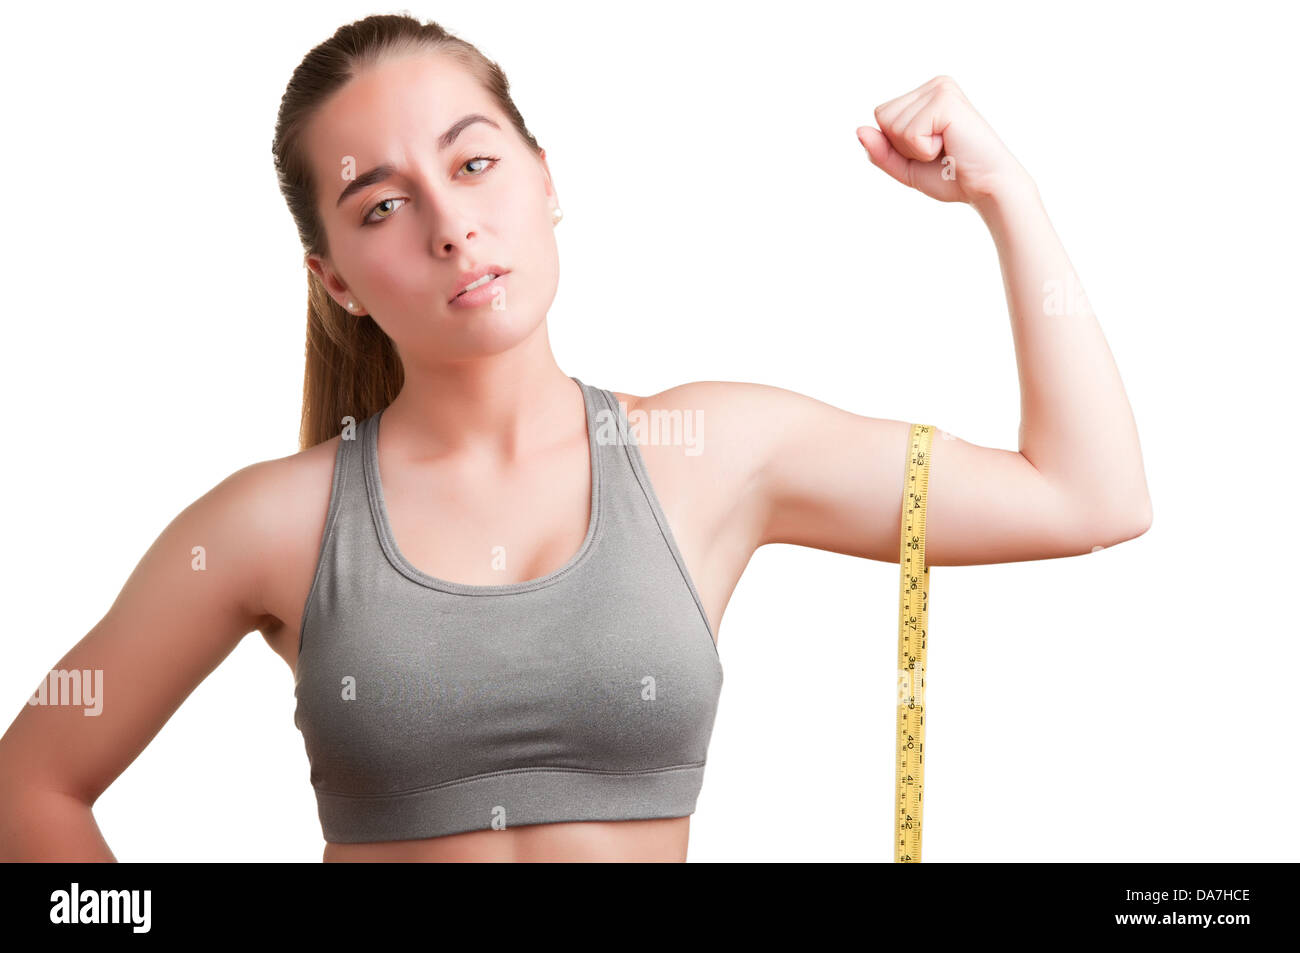 Powerful woman measuring her biceps with a yellow measuring tape - Stock Image